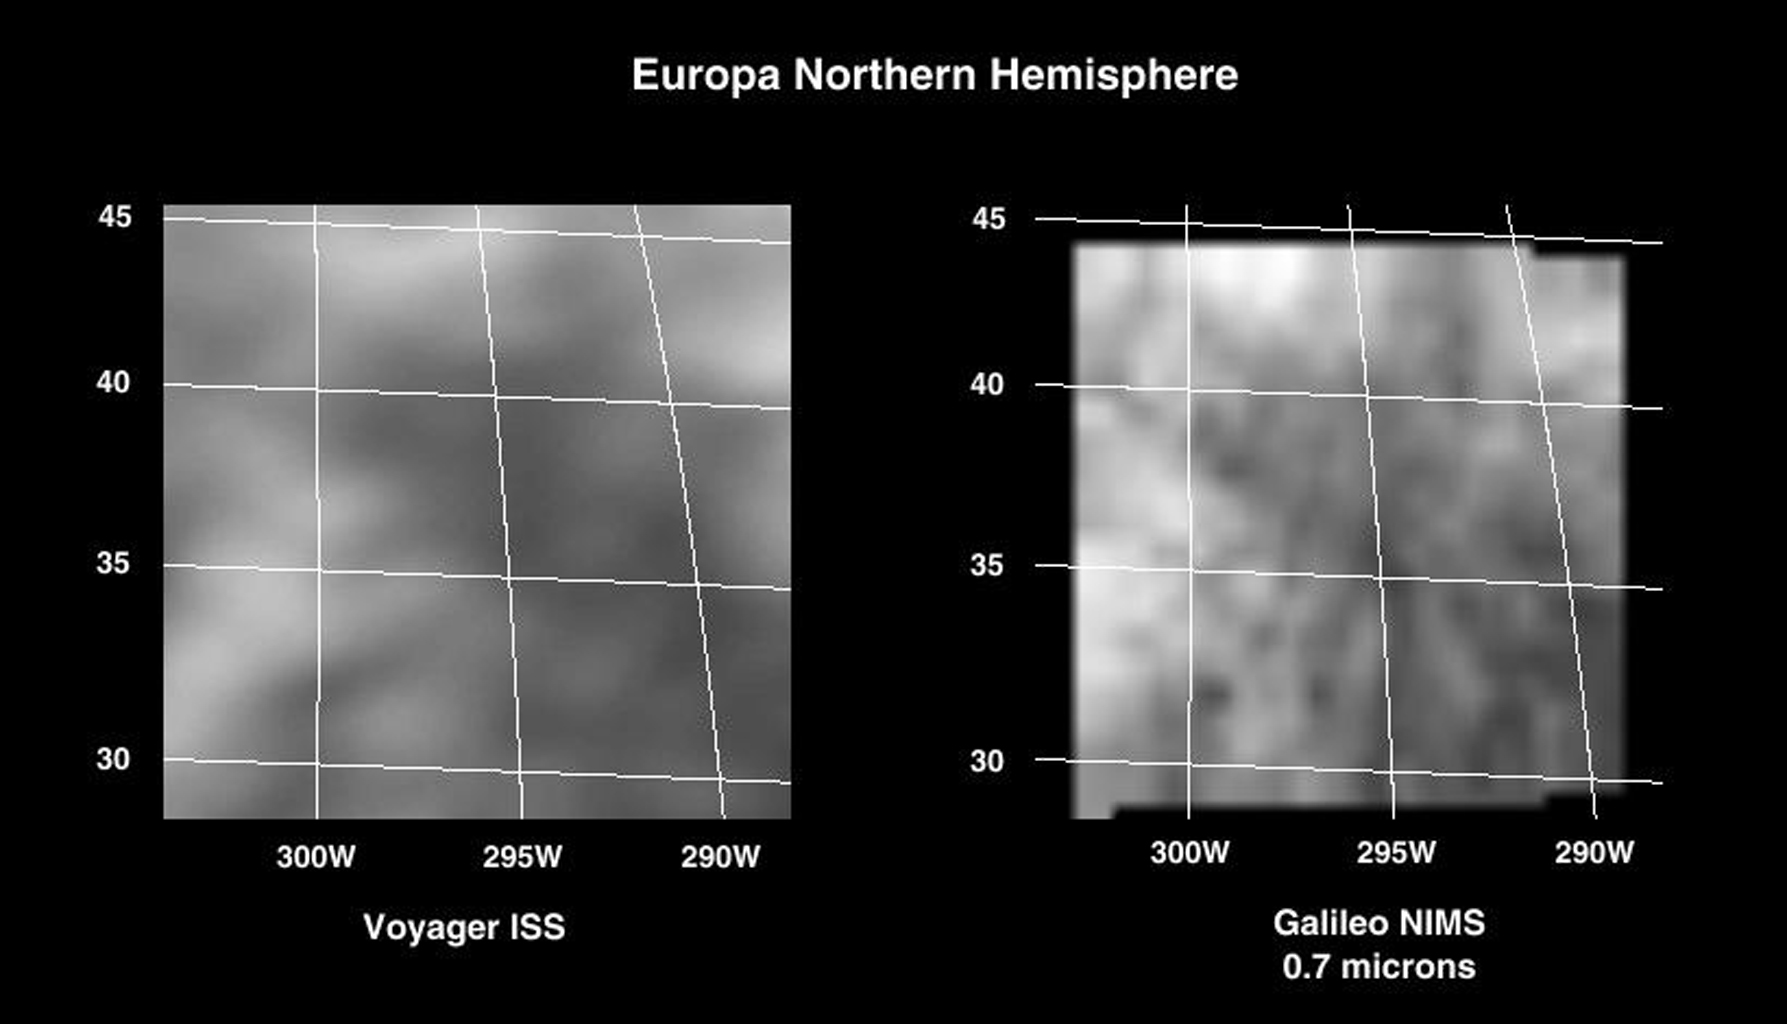 During the first targeted encounter of the icy satellite Europa, NASA's Galileo performed high resolution spectral mapping of the trailing side, a region thought to have minerals other than water ice.